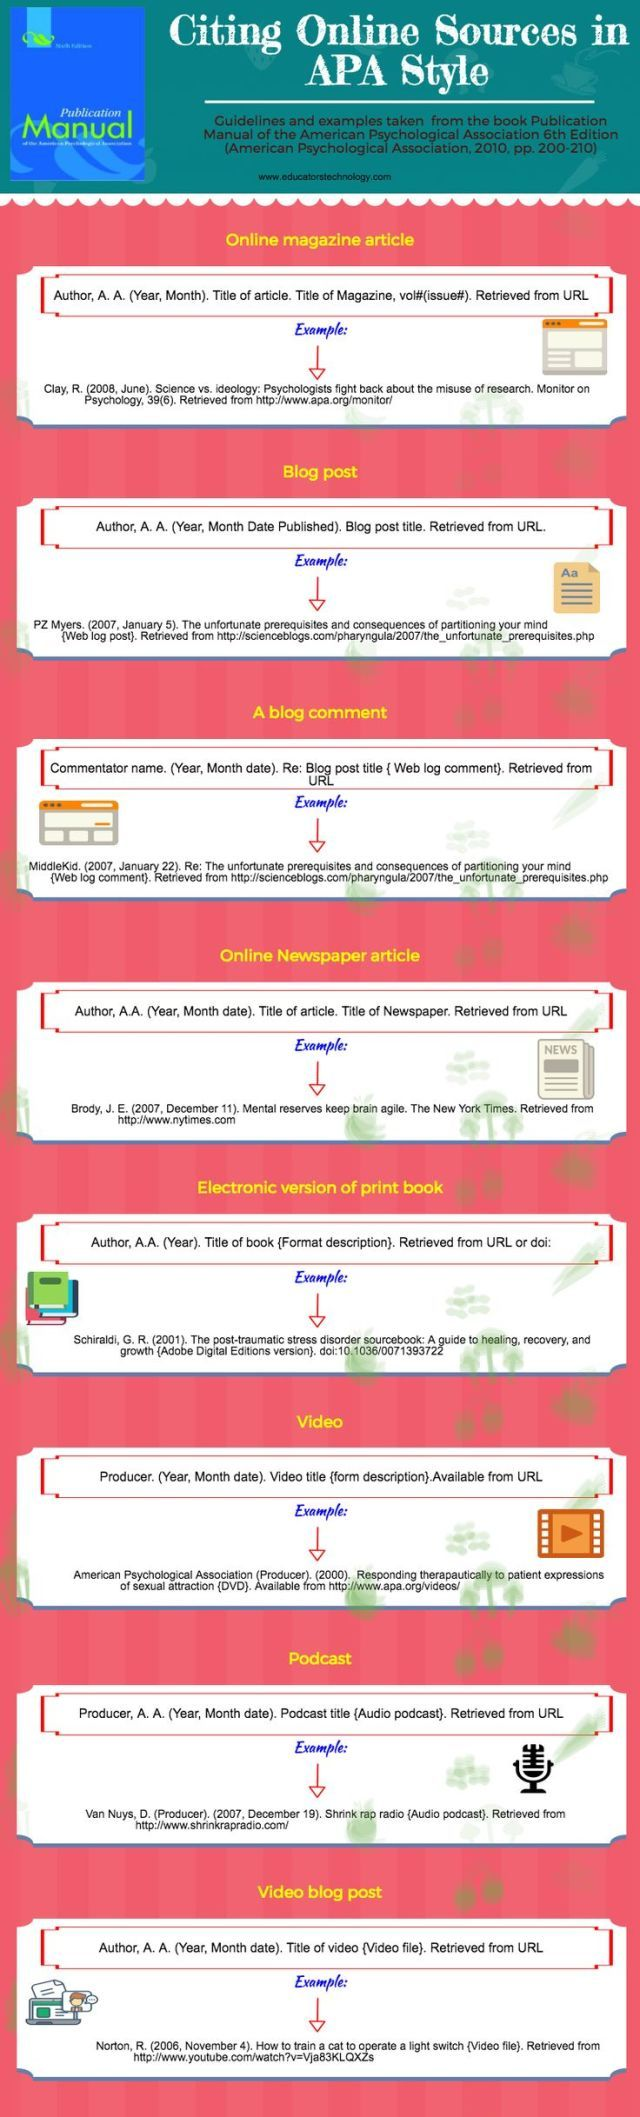 Psychology : An Interesting Visual on How to Cite Online Sources in APA Style